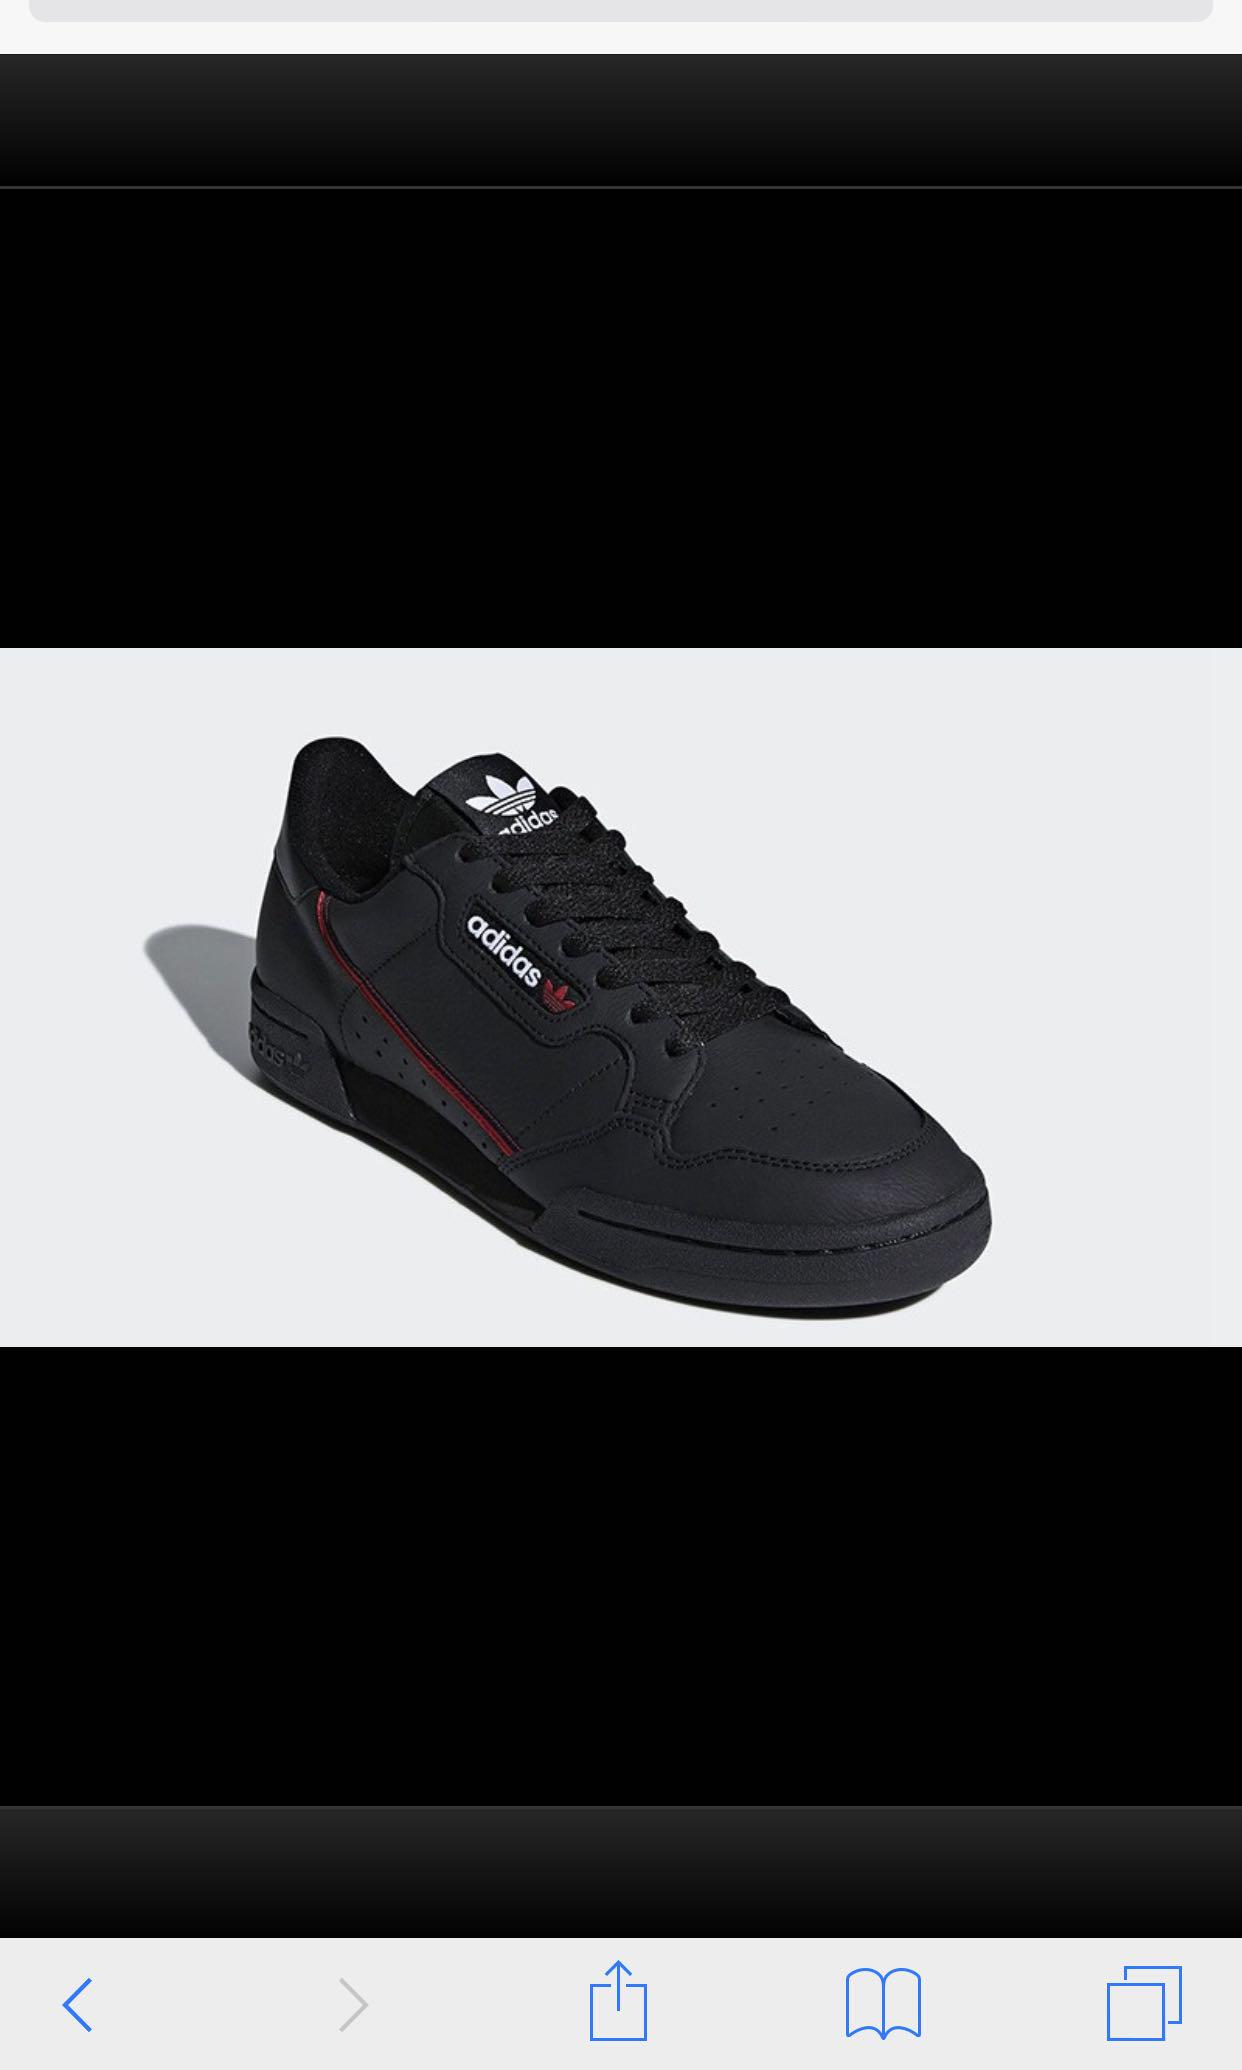 Adidas Continental 80 Rascal Shoes (Black)